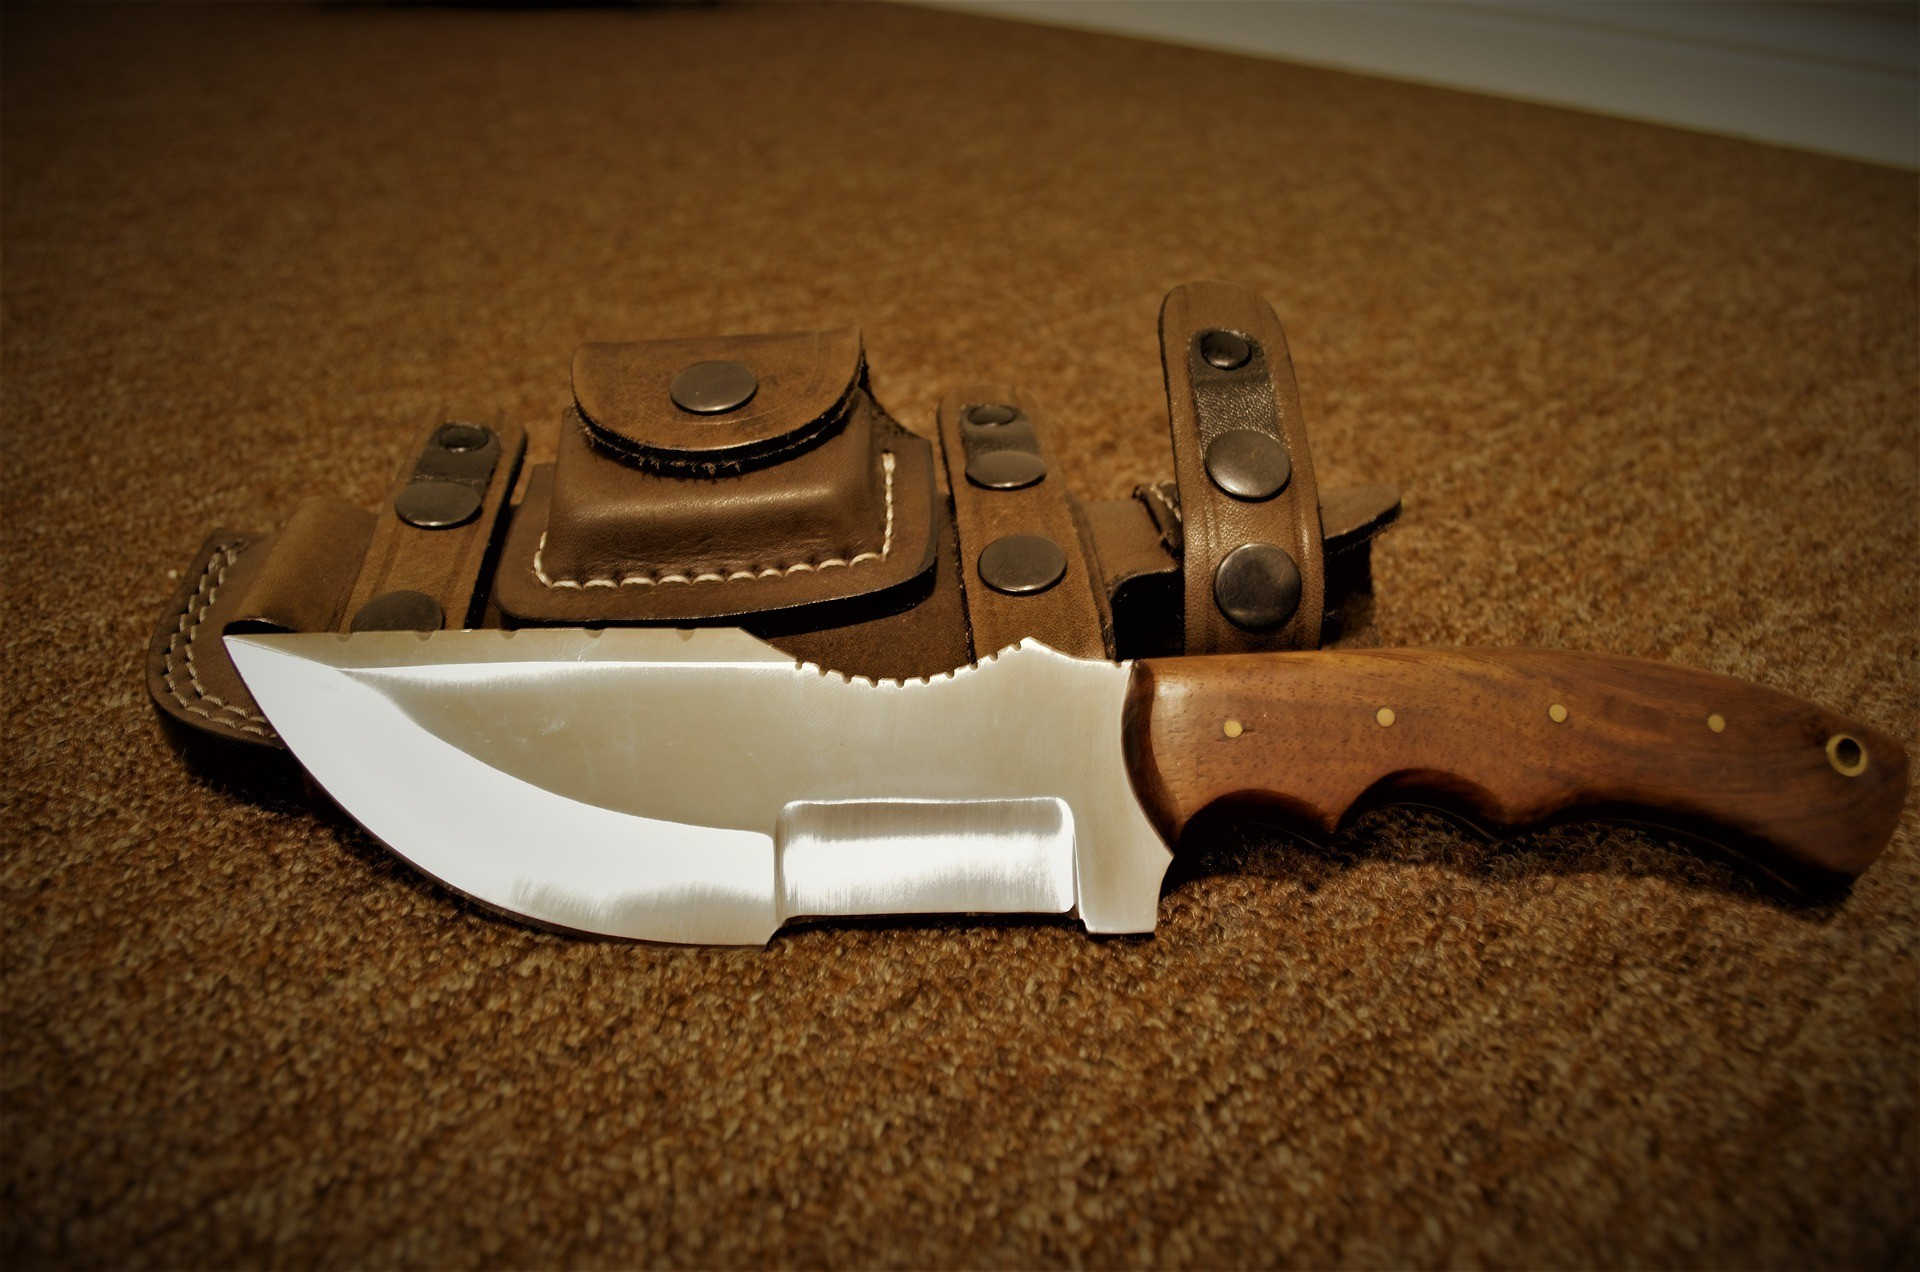 The best hunting knife you can buy today